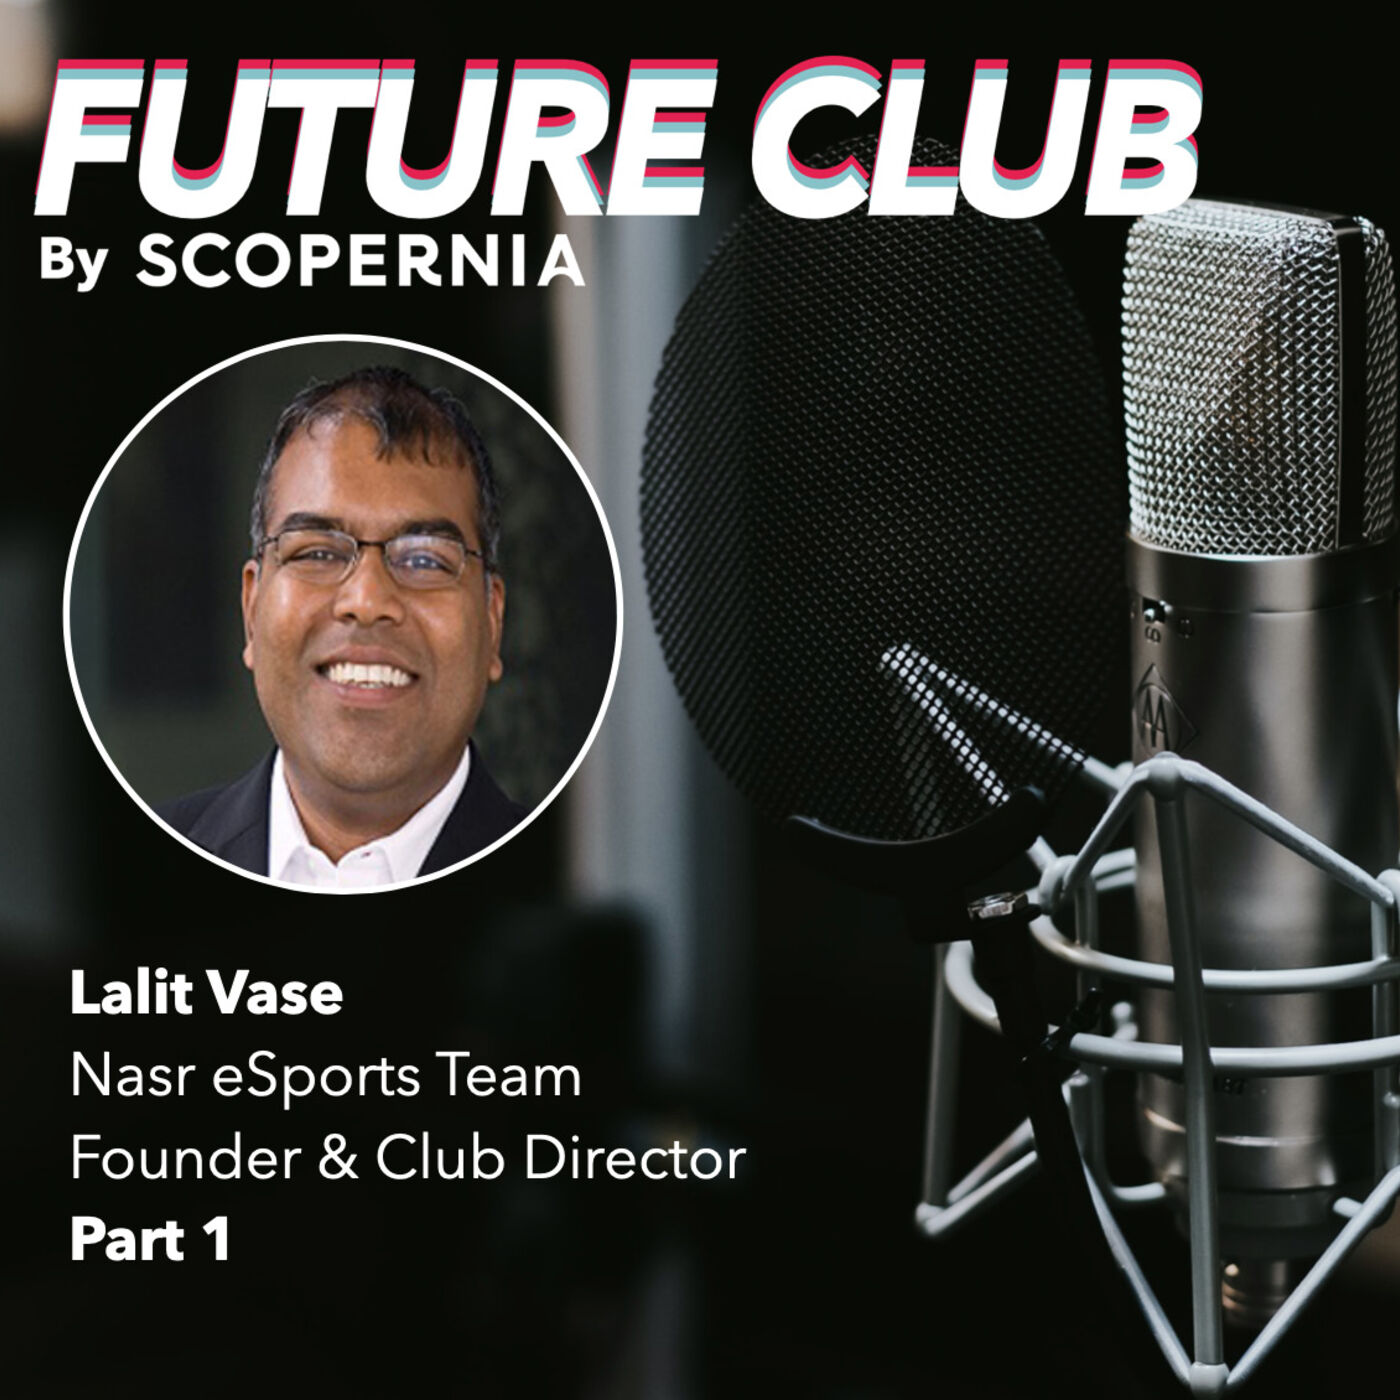 The promising future of gaming and eSports in the Middle East with Lalit Vase (part 1)